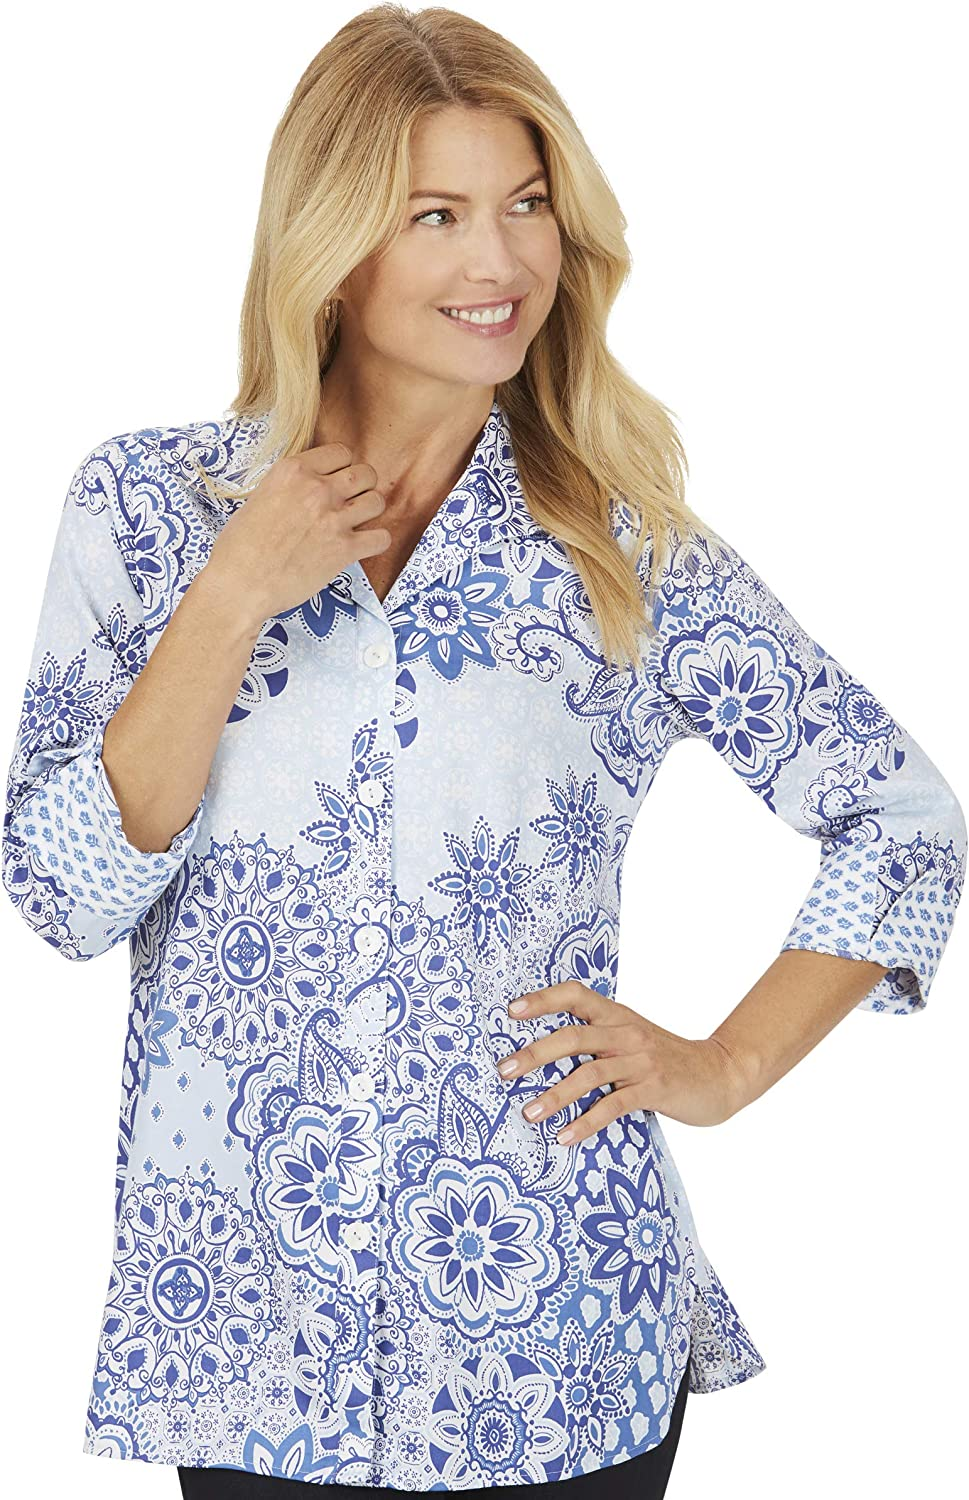 Poppy Wrinkle Free in Tunic Flowing Max supreme 64% OFF Tiles